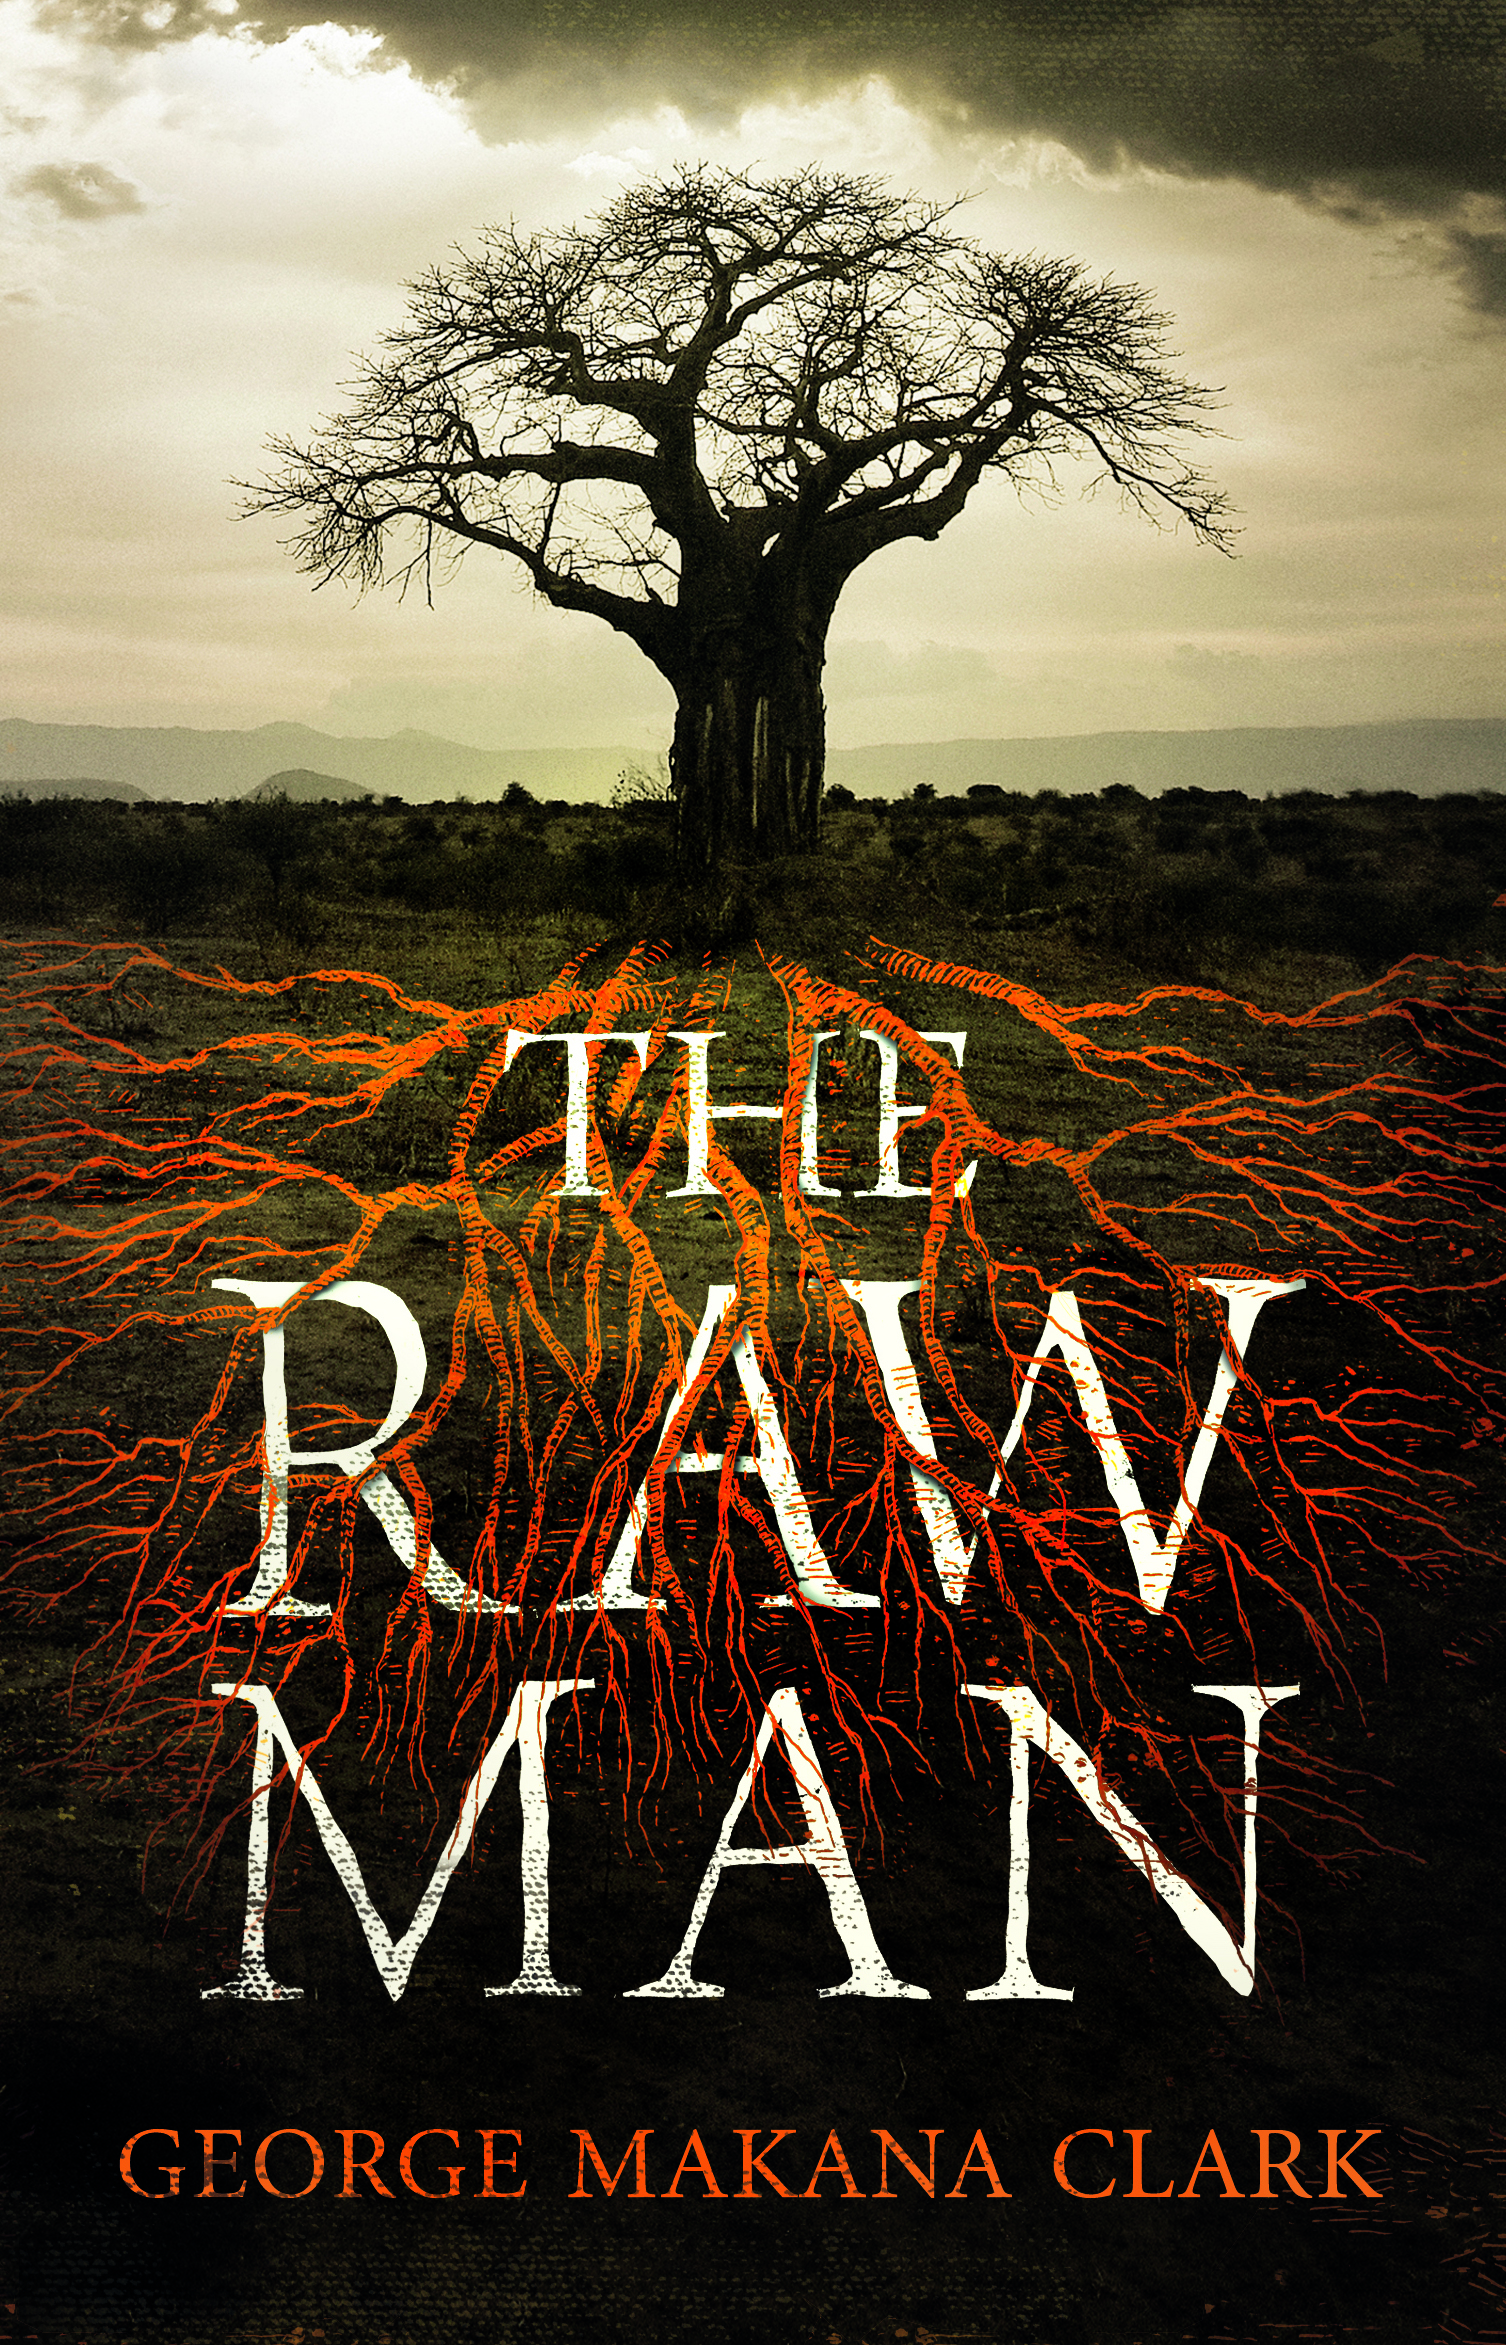 THE RAW MAN  Literary fiction, 330 pages Jonathan Cape Ltd     A remarkable, revelatory debut set in Southern Africa, where a young man who has the gift, or curse, of being a 'blood reader', struggles to unravel his family's secrets and grapples with his own troubled past. In sections oscillating between the material and spiritual worlds we learn Sergeant Gordon's story in reverse, from the military in the Rhodesian Bush War, to adolescent rebellion, the brutal initiations of youth, back to childhood, birth and ancestry.     'An extraordinary novel, and  a work of rare conception, bringing together, within one individual,  the painfully conflicted history of southern Africa.' -- Brian Chikwava, author of HARARE NORTH